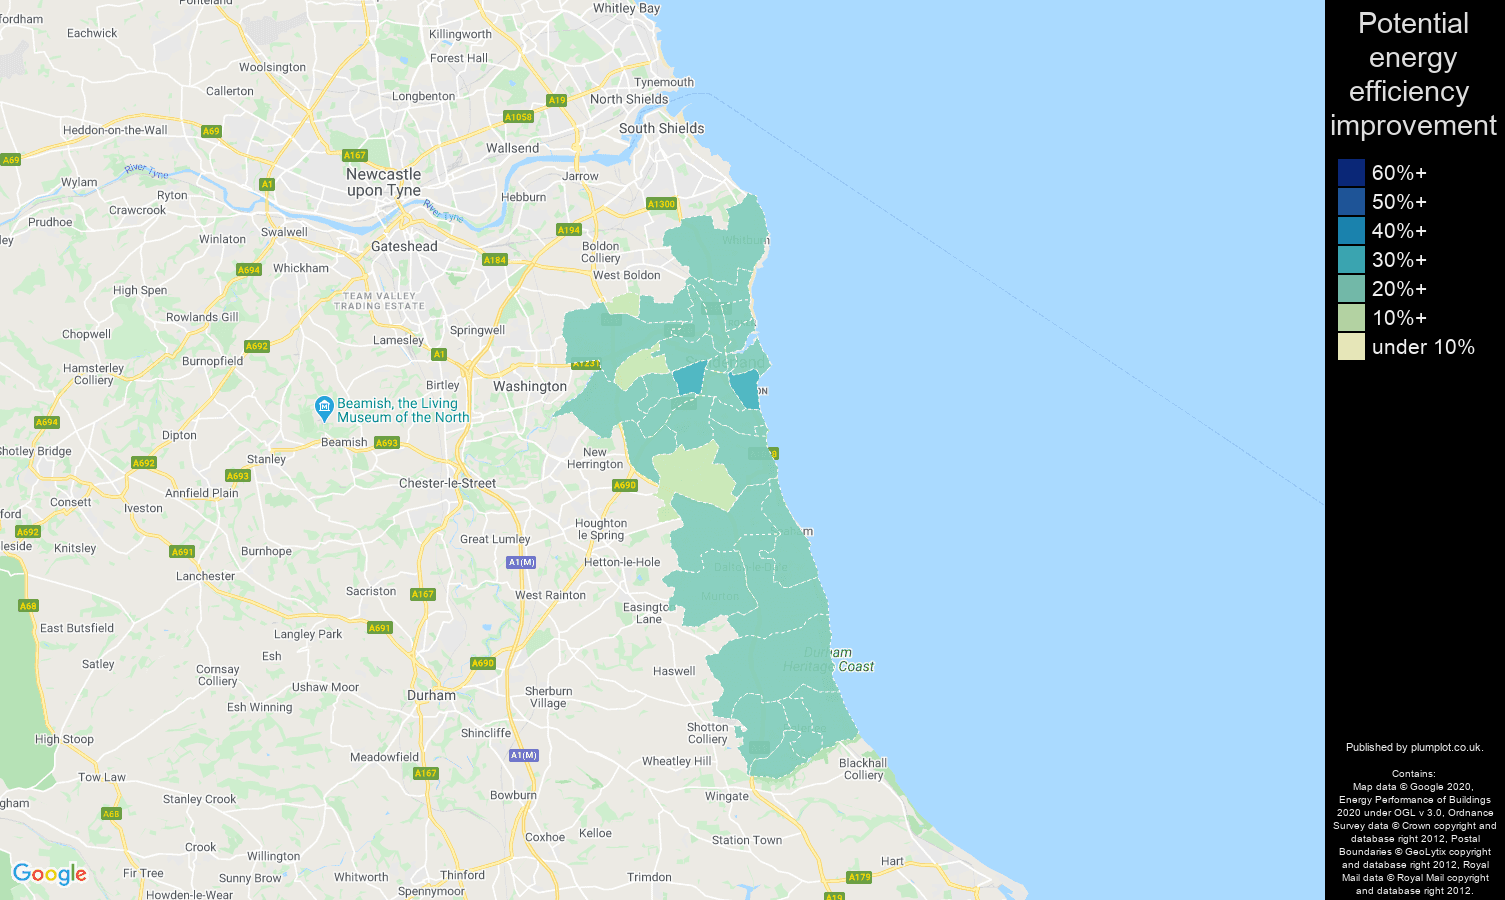 Sunderland map of potential energy efficiency improvement of houses